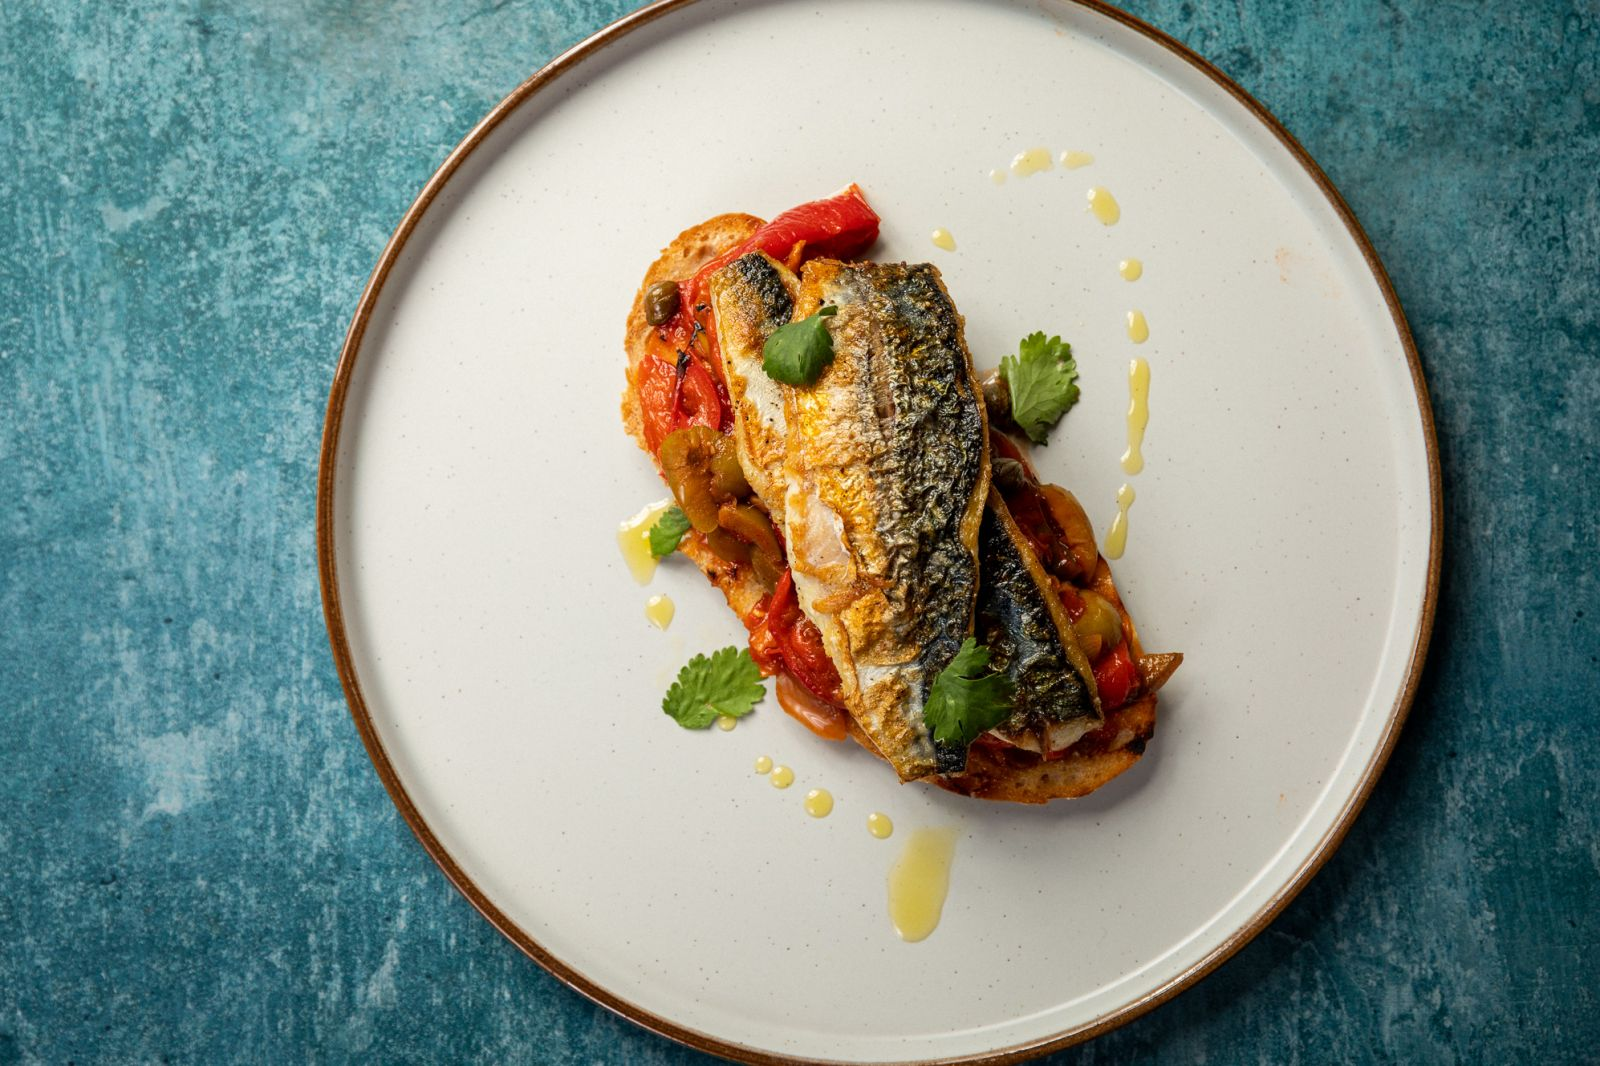 Pan fried mackerel with pepperonata, Photo by Mike Searle